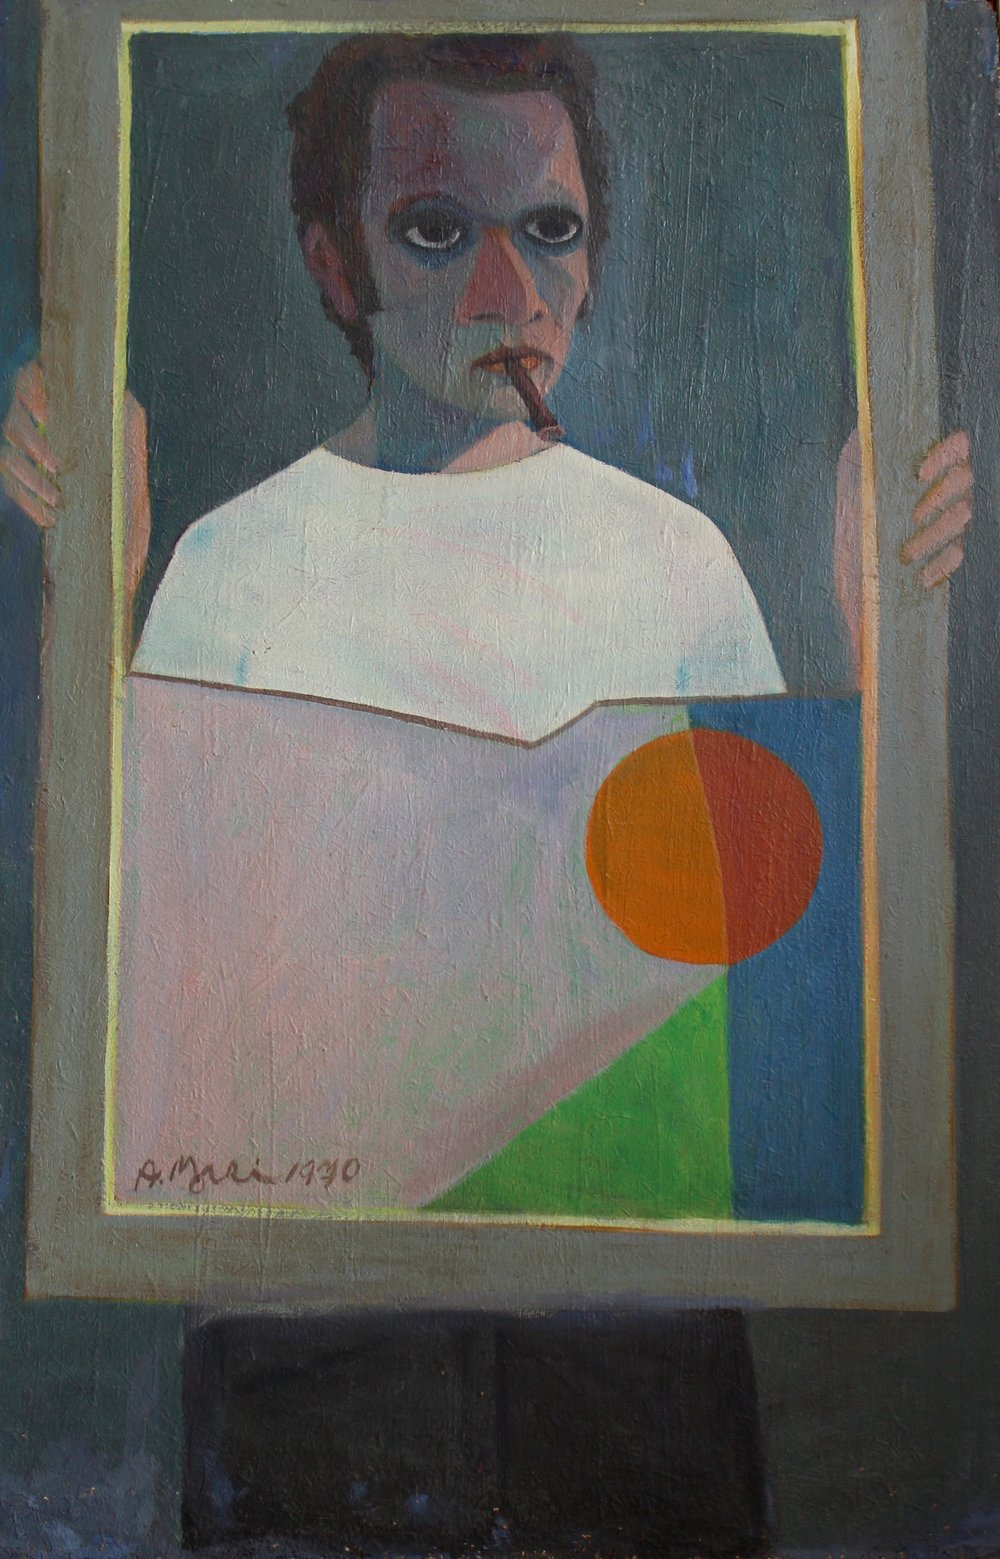 Ahmed_Morsi_Self_Portrait_1970.jpg